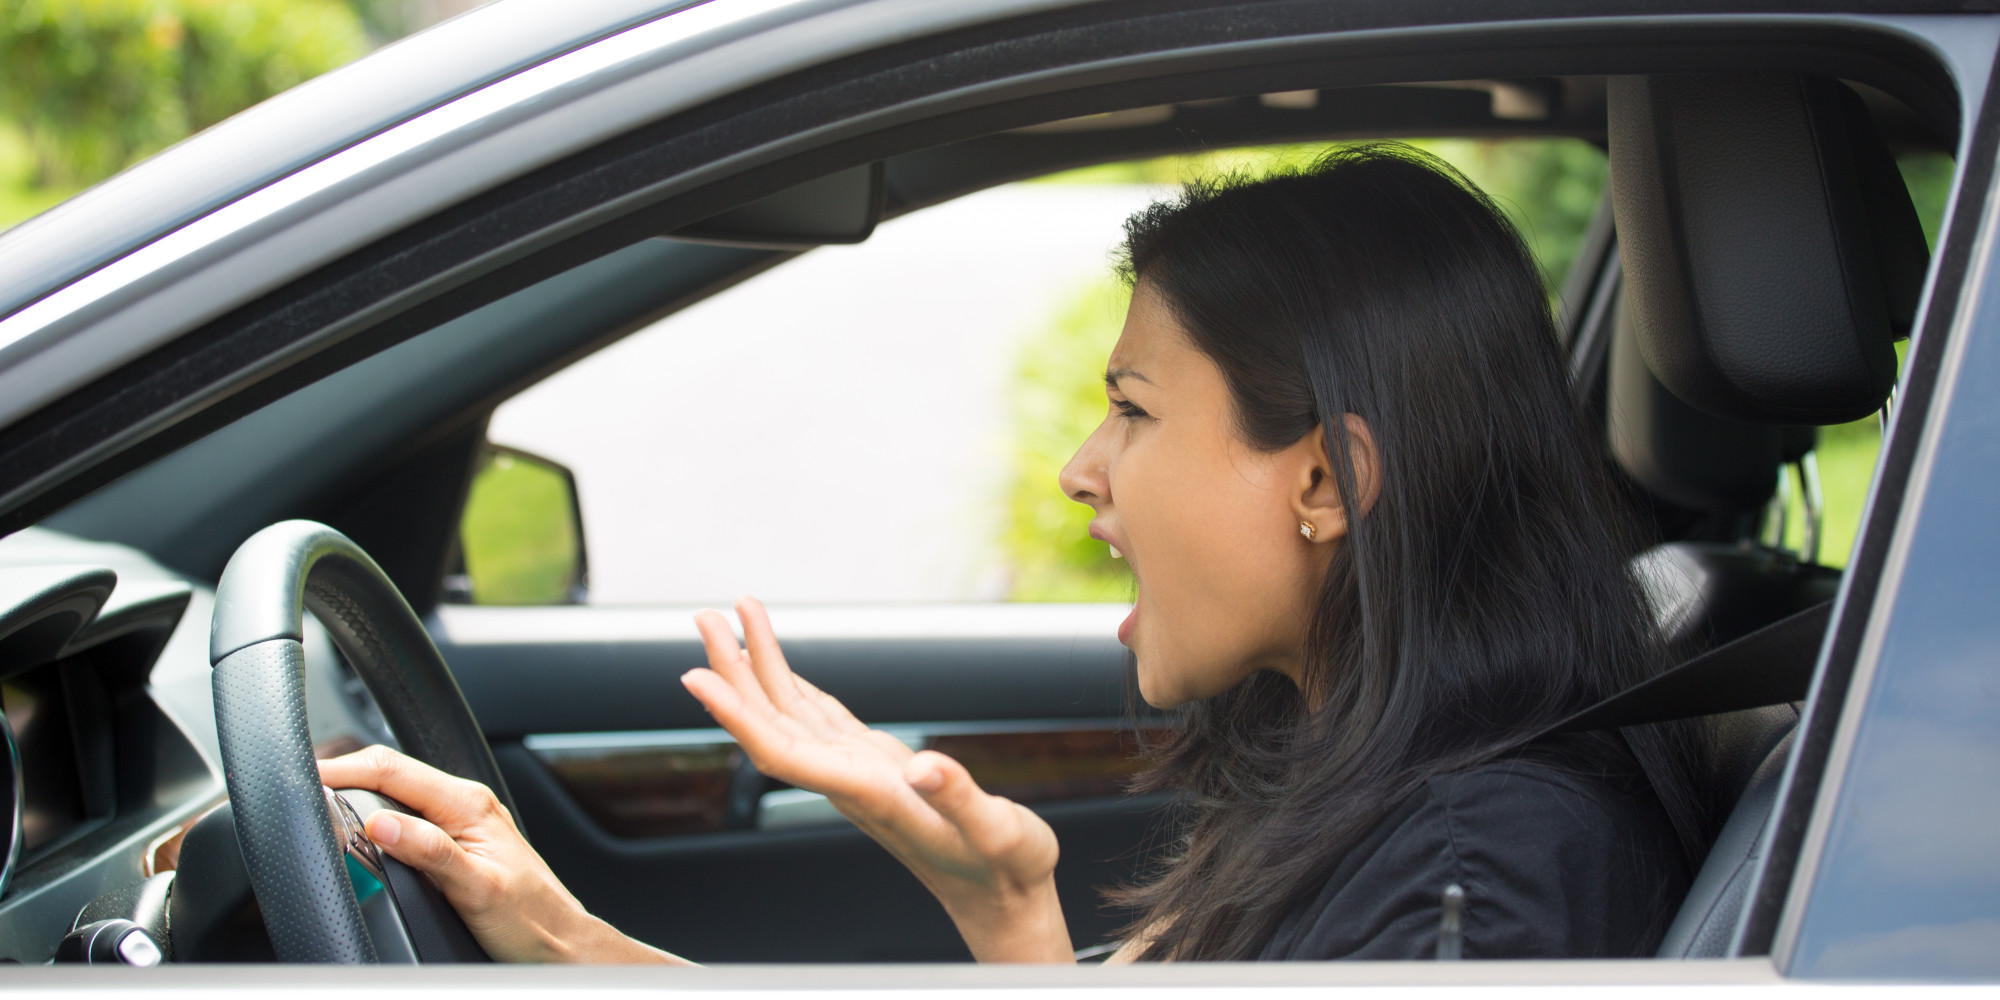 The road rage problem in the united states